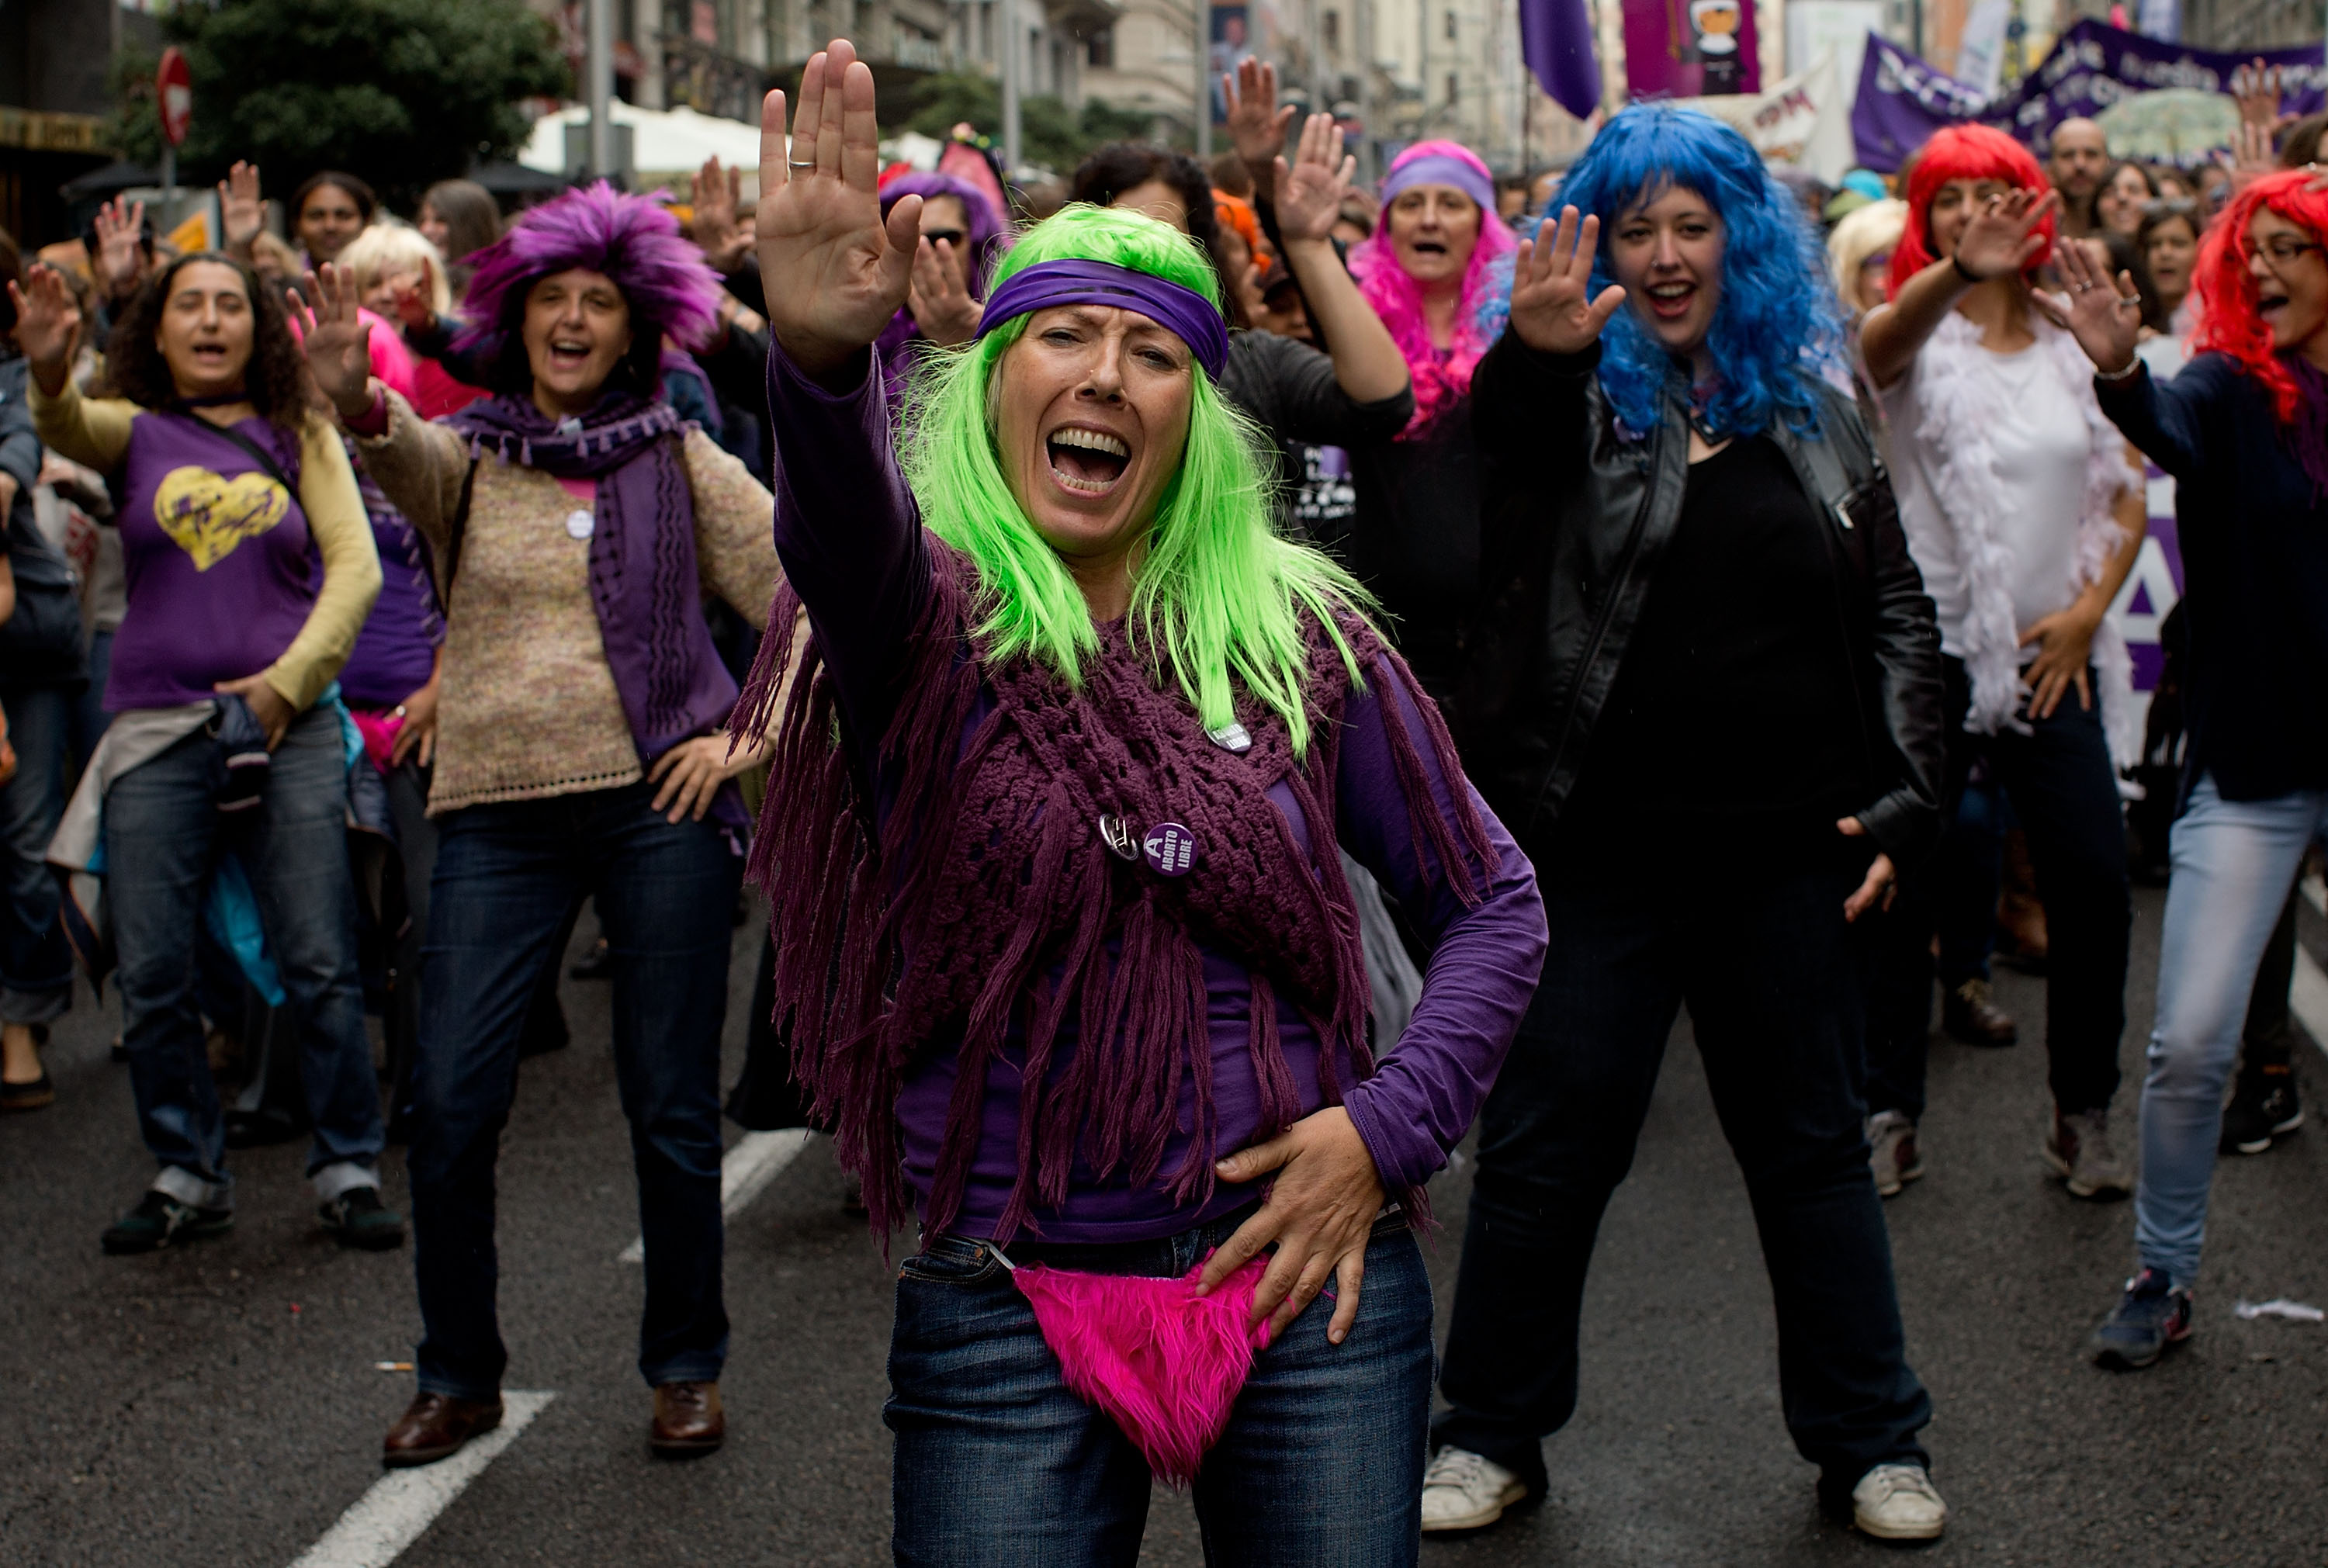 Women dance during a demonstration supporting reproductive rights for women on September 28, 2014 in Madrid, Spain.